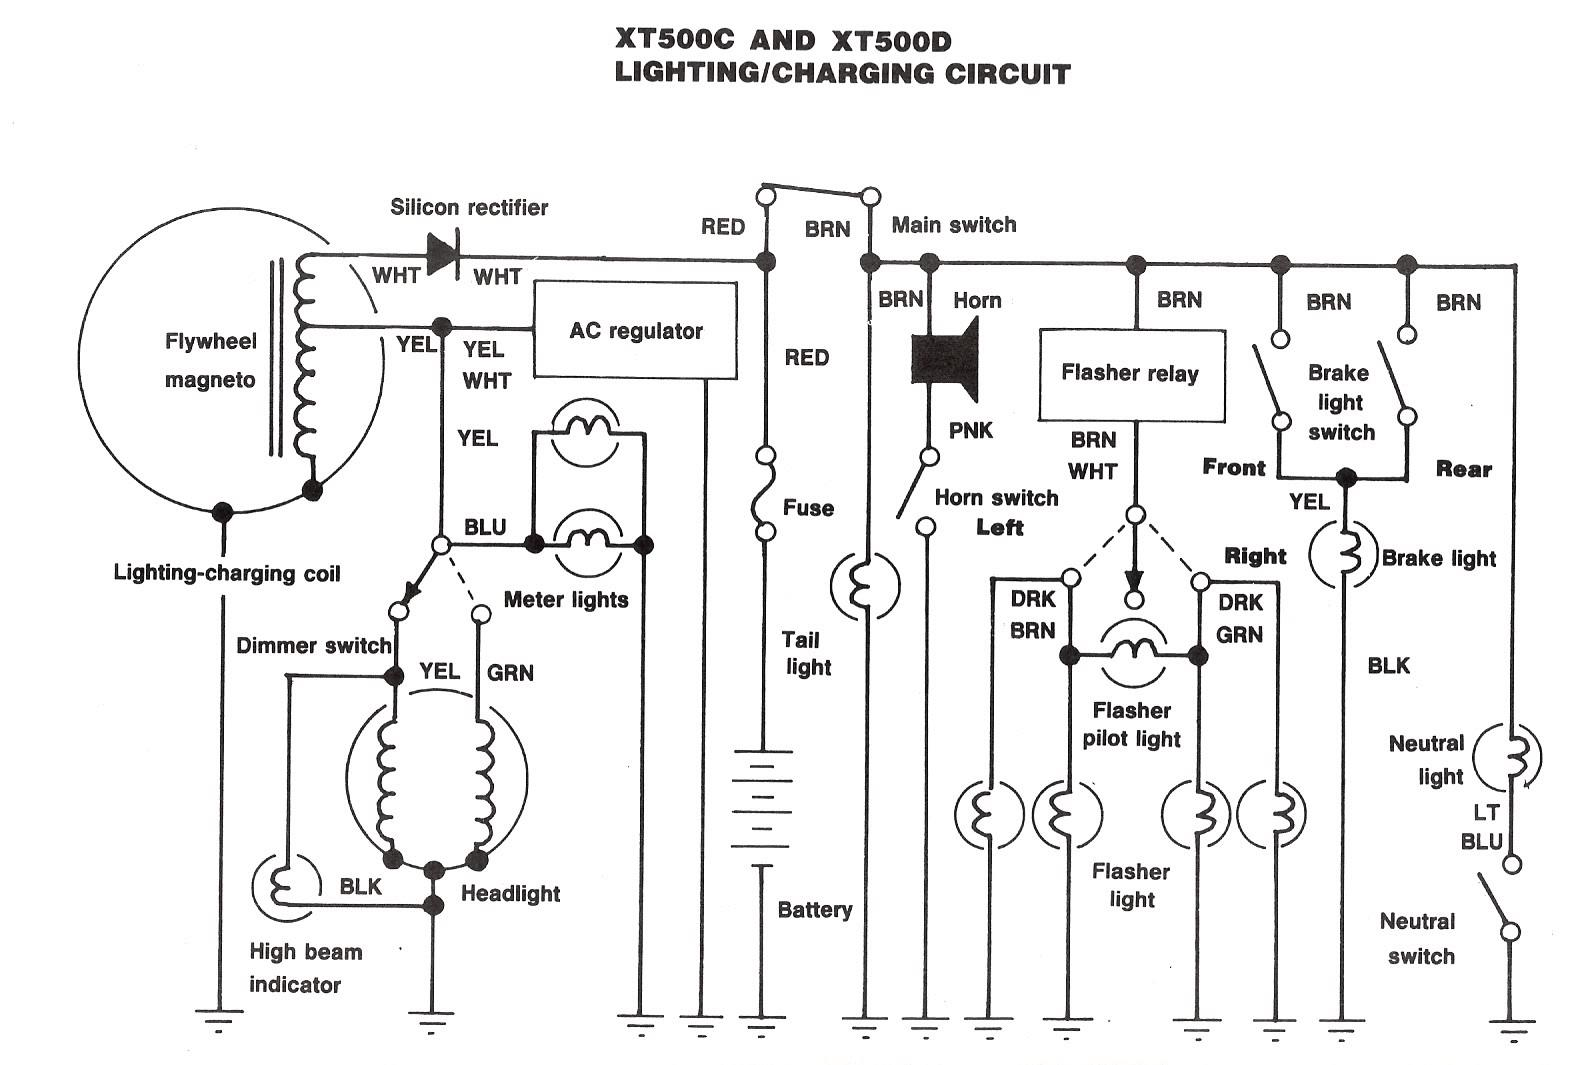 Xt500 Electrical2 Easy Motorcycle Wiring Diagram The Us For 1980 And 1981